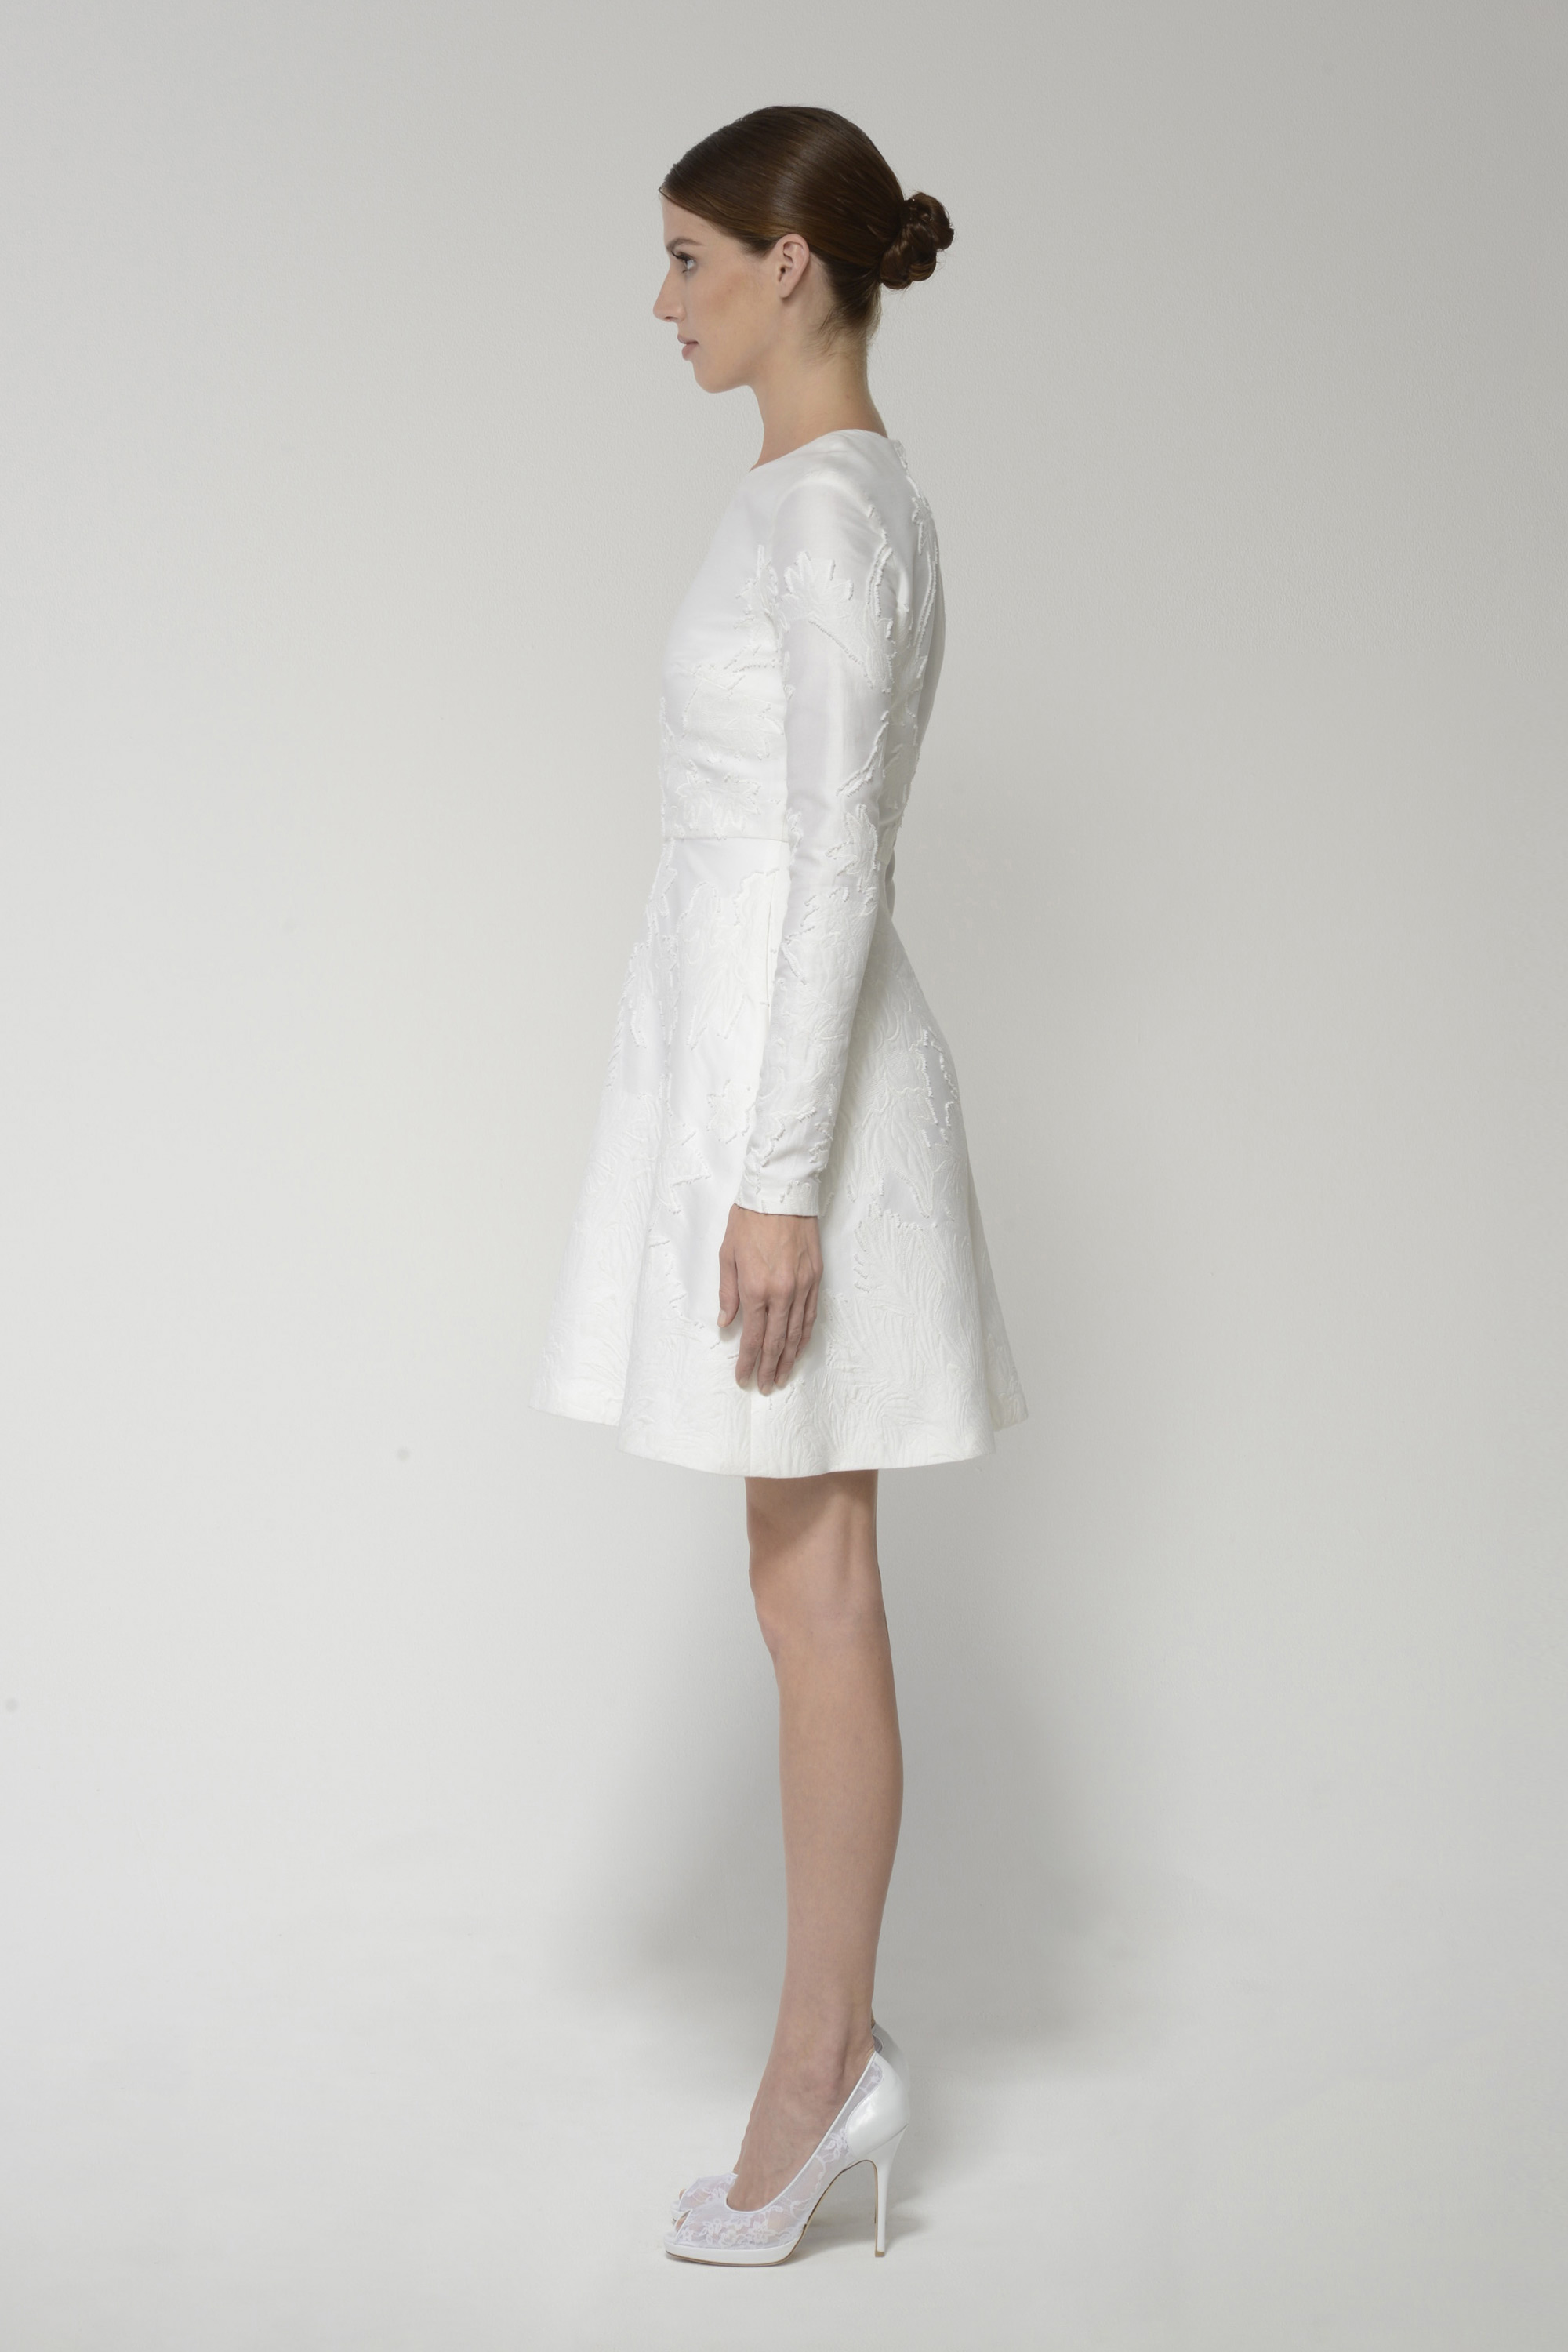 Minniedress silkwhite right 3